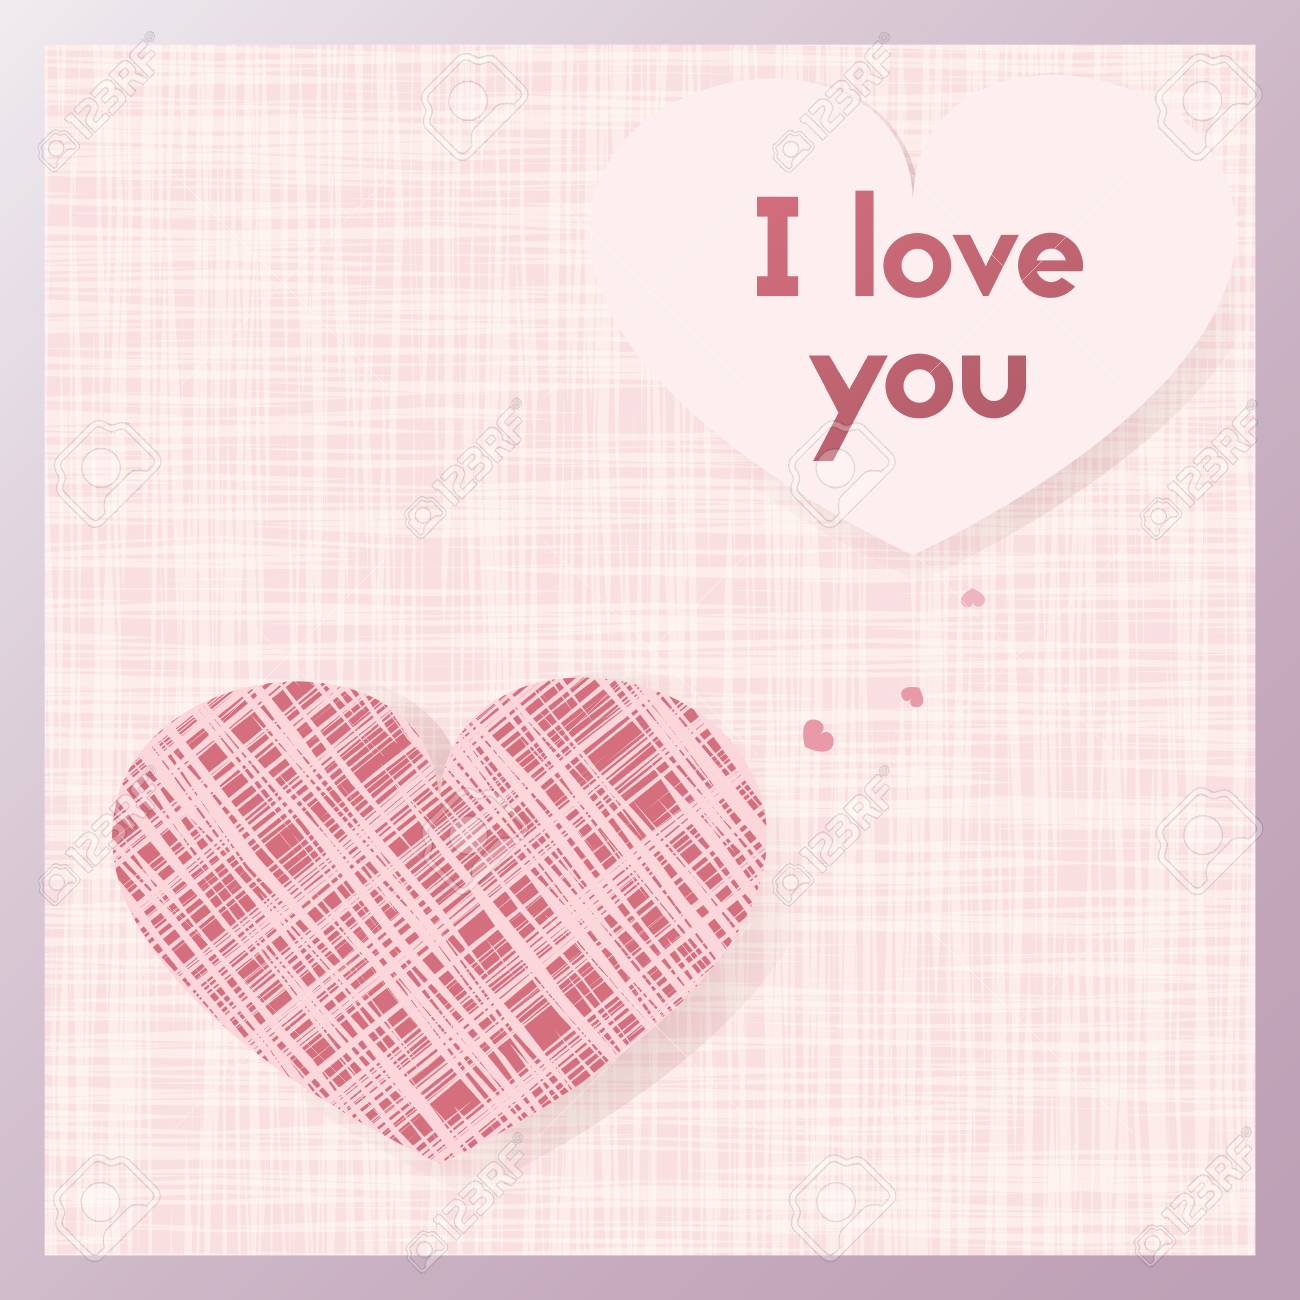 Romantic Gift Greeting Card For Lovers Royalty Free Cliparts